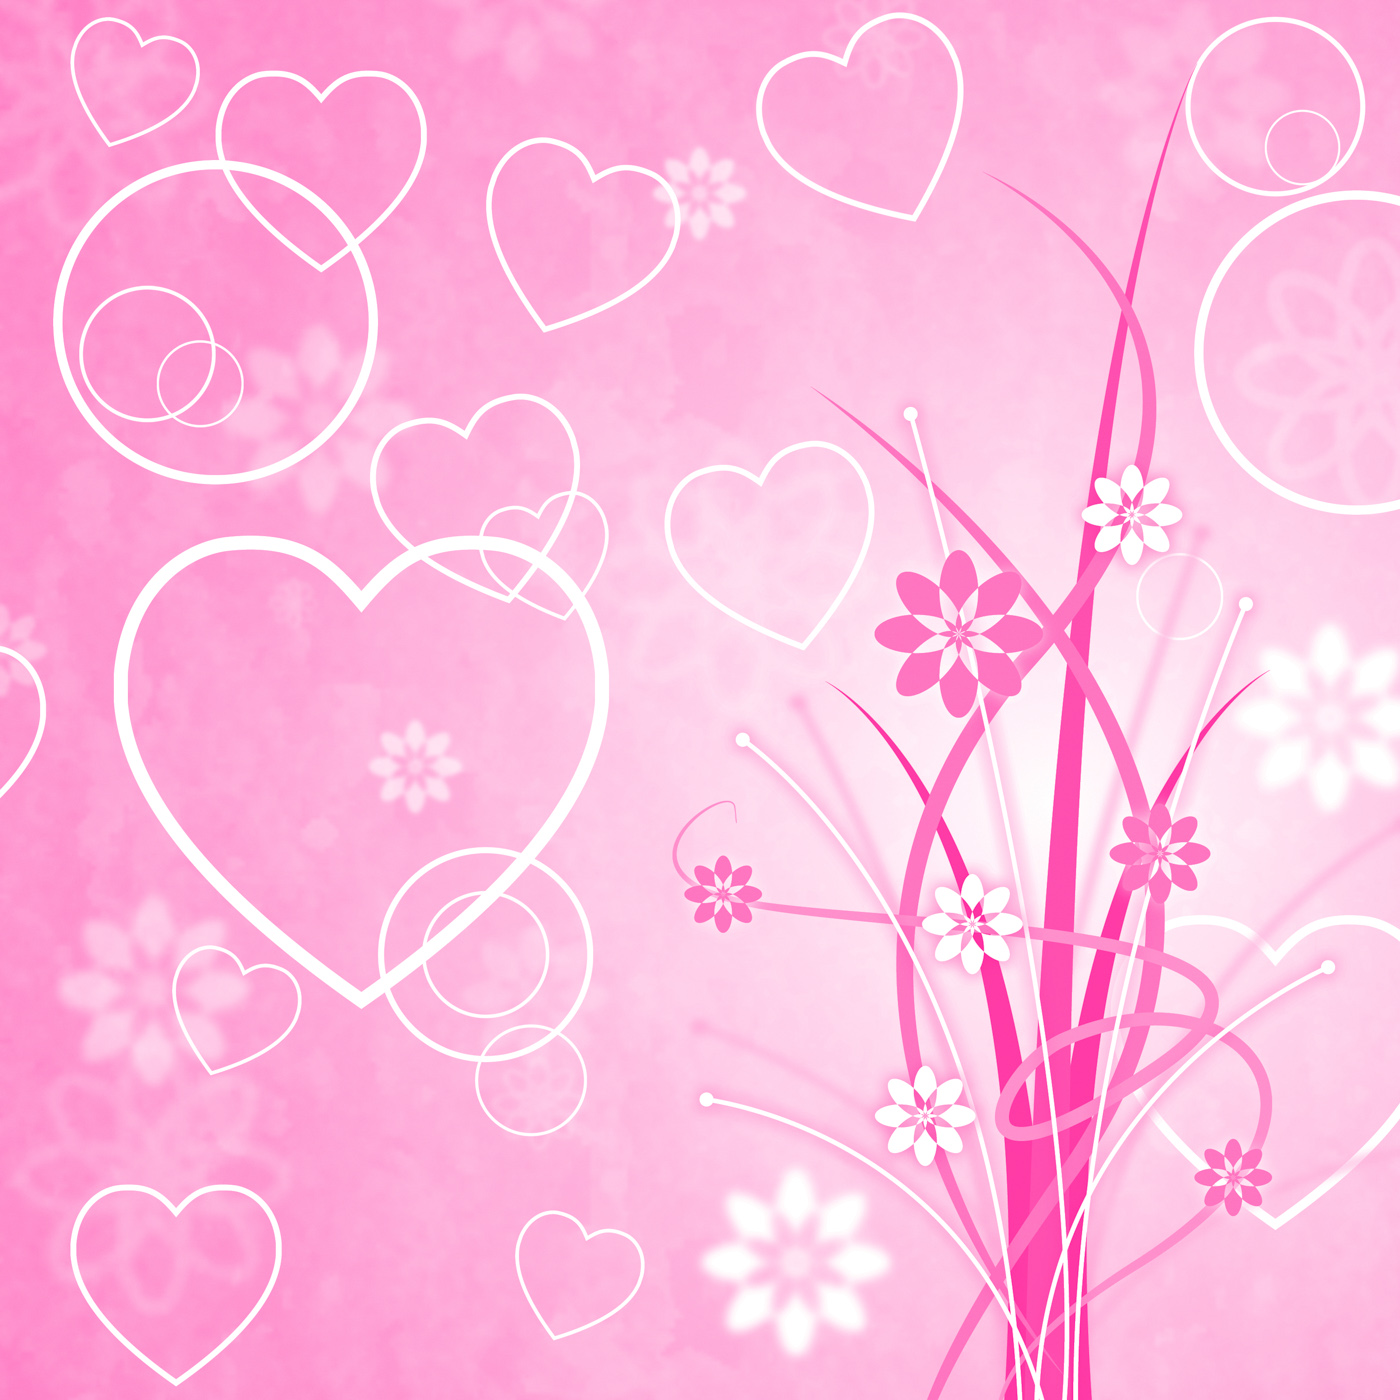 Pink background means valentines day and abstract photo